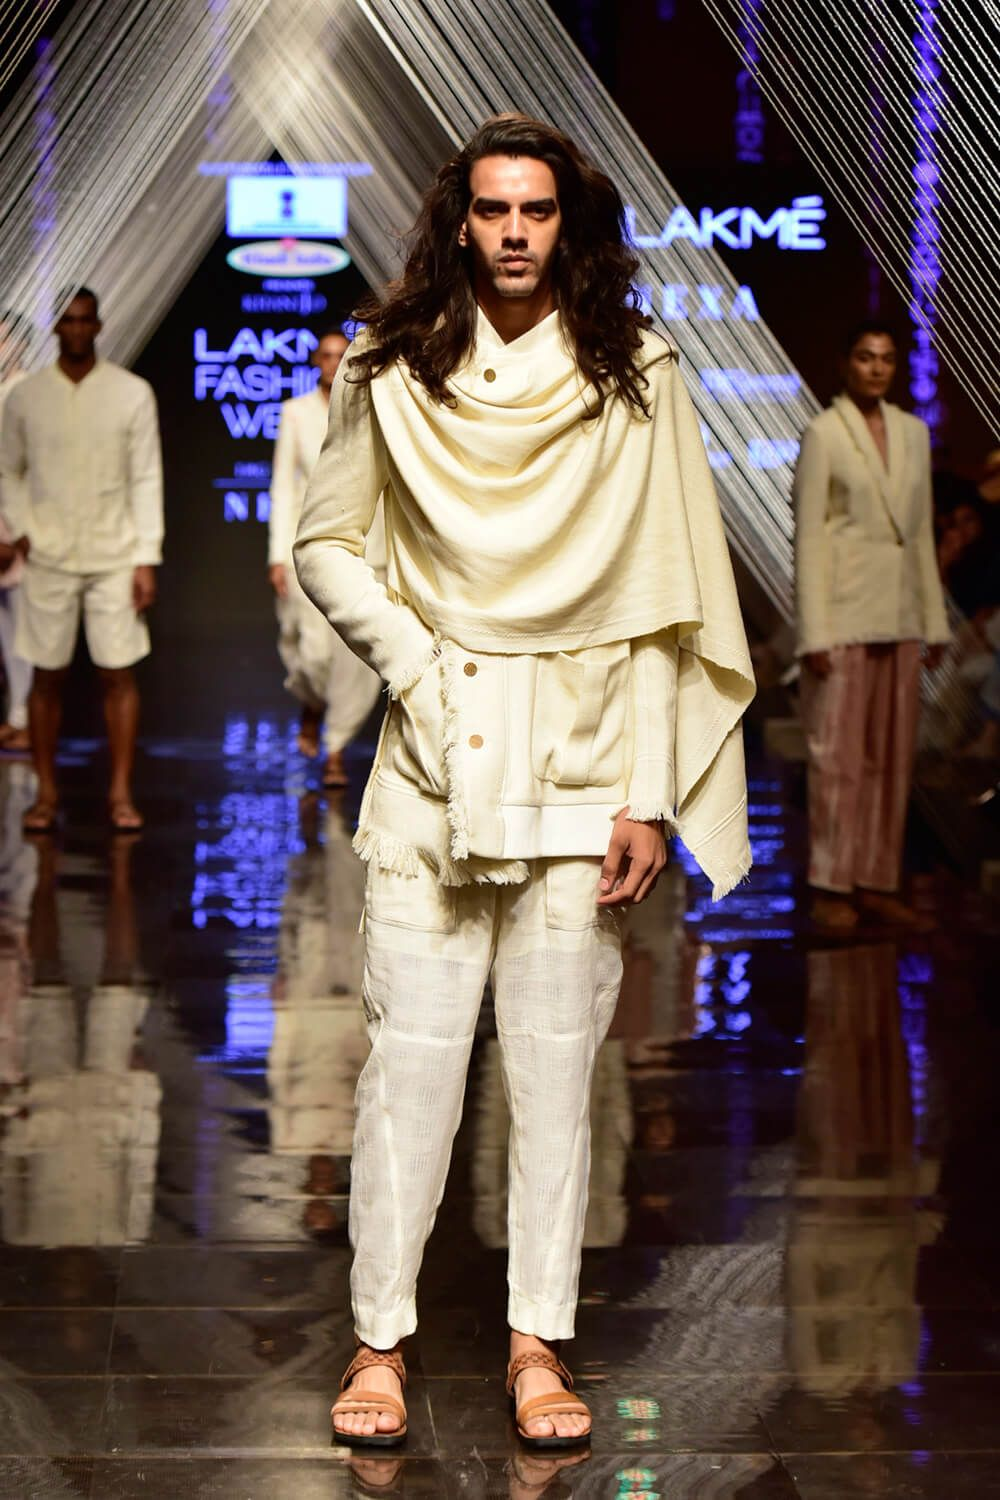 Paying A Tribute To Gandhi The Kvic Show On Day 2 Of The Lakme Fashion Week Winter Festive 2019 Fashion Designers Famous Fashion Famous Fashion